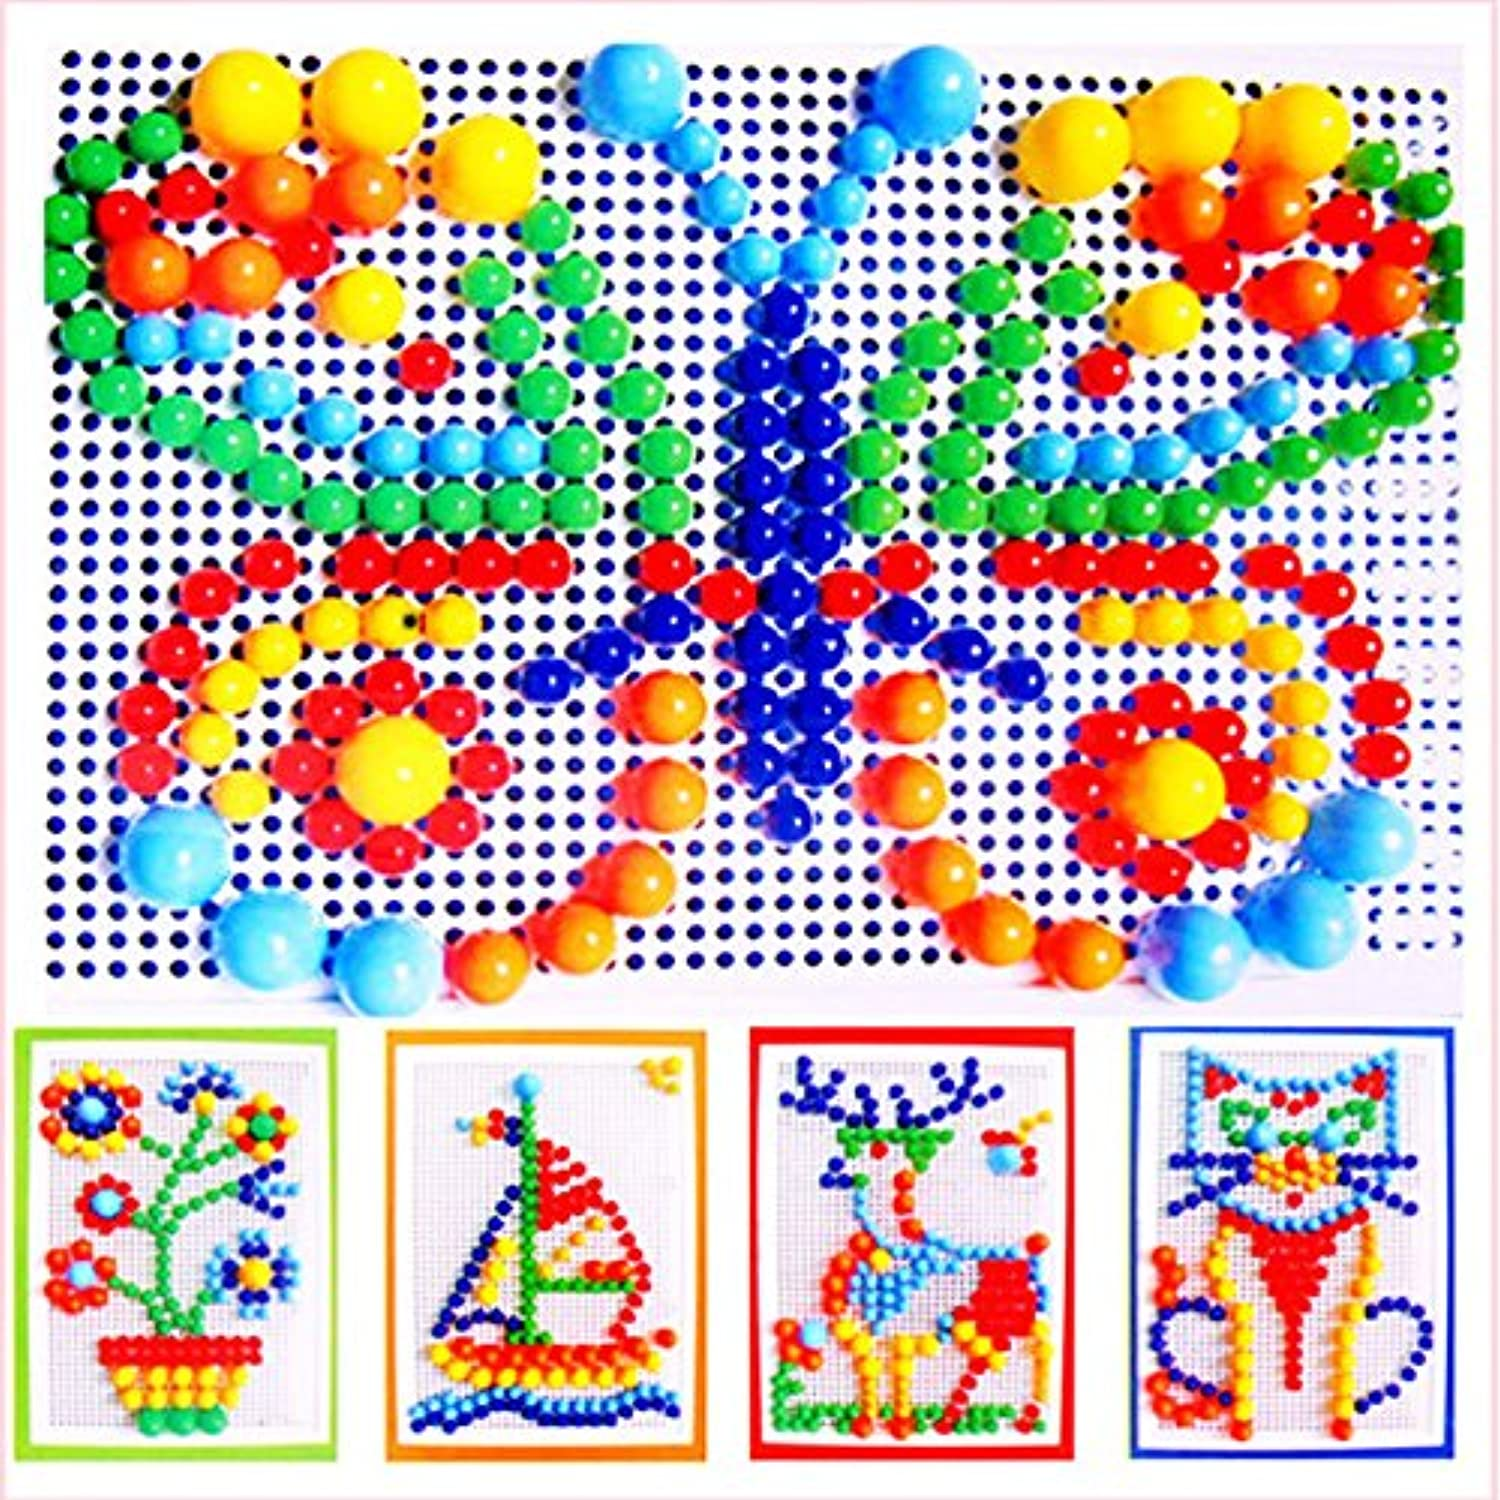 CynKen 296PCS Portable Mosaic Nail Puzzle Peg Board For Kids Children Educational Toys Gift